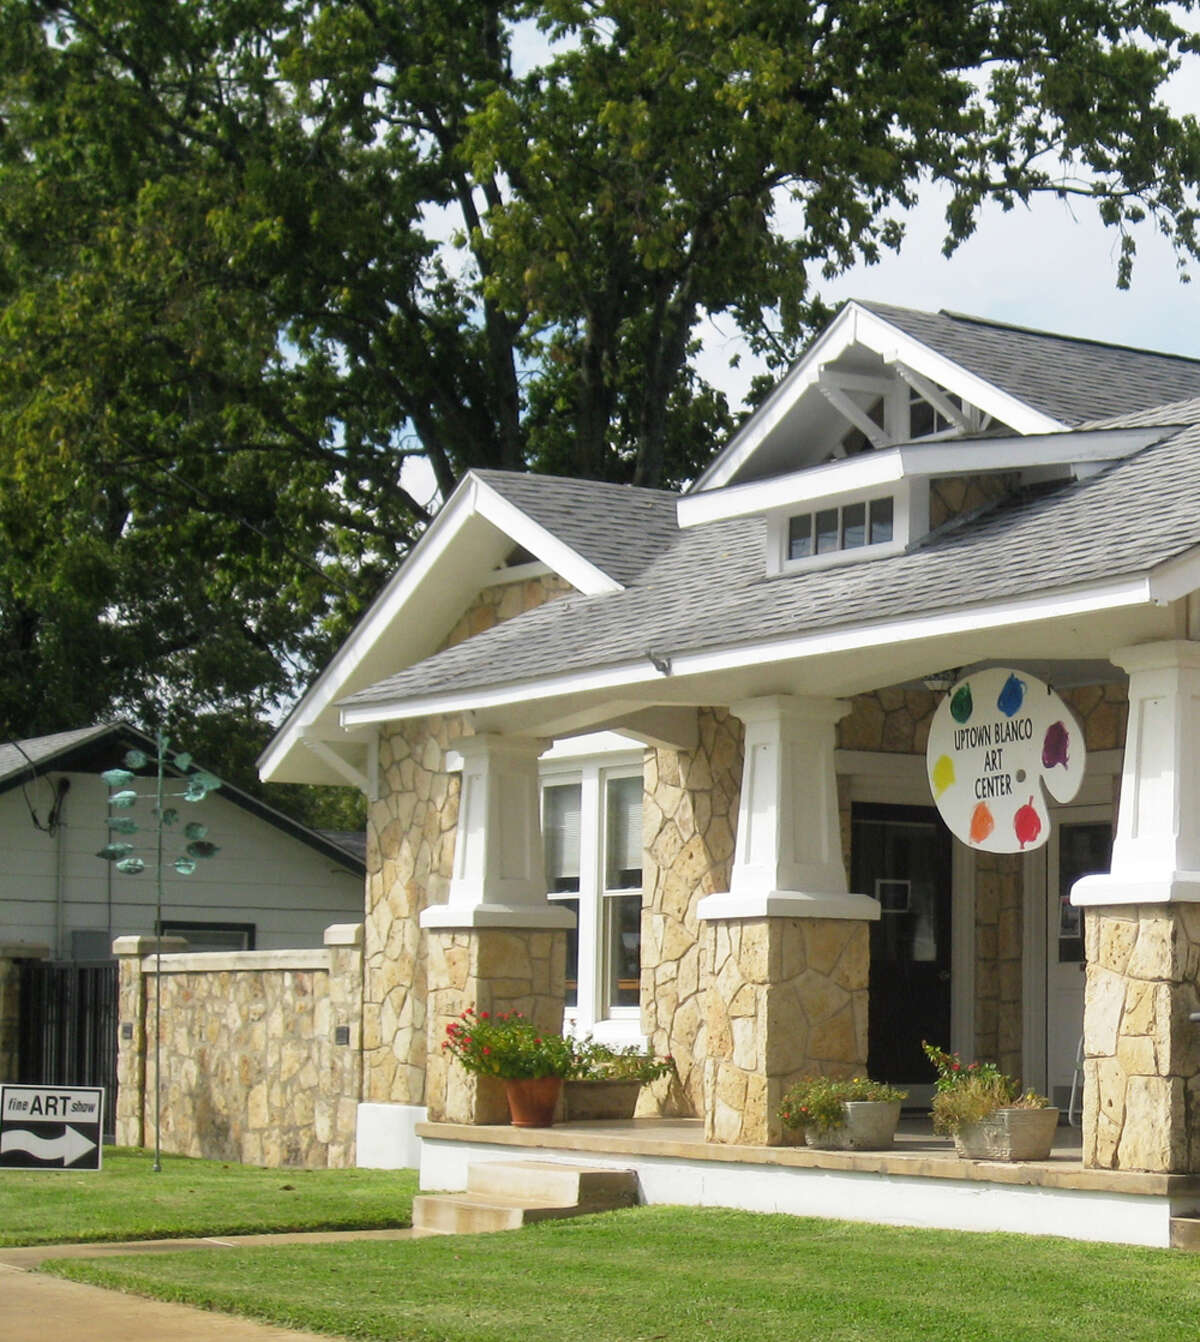 Uptown Art Center, housed in a historic home, offers art classes and is available for special occasions. Its Art Gallery exhibits works by Texas artists. KATHLEEN SCOTT / SPECIAL TO THE EXPRESS-NEWS